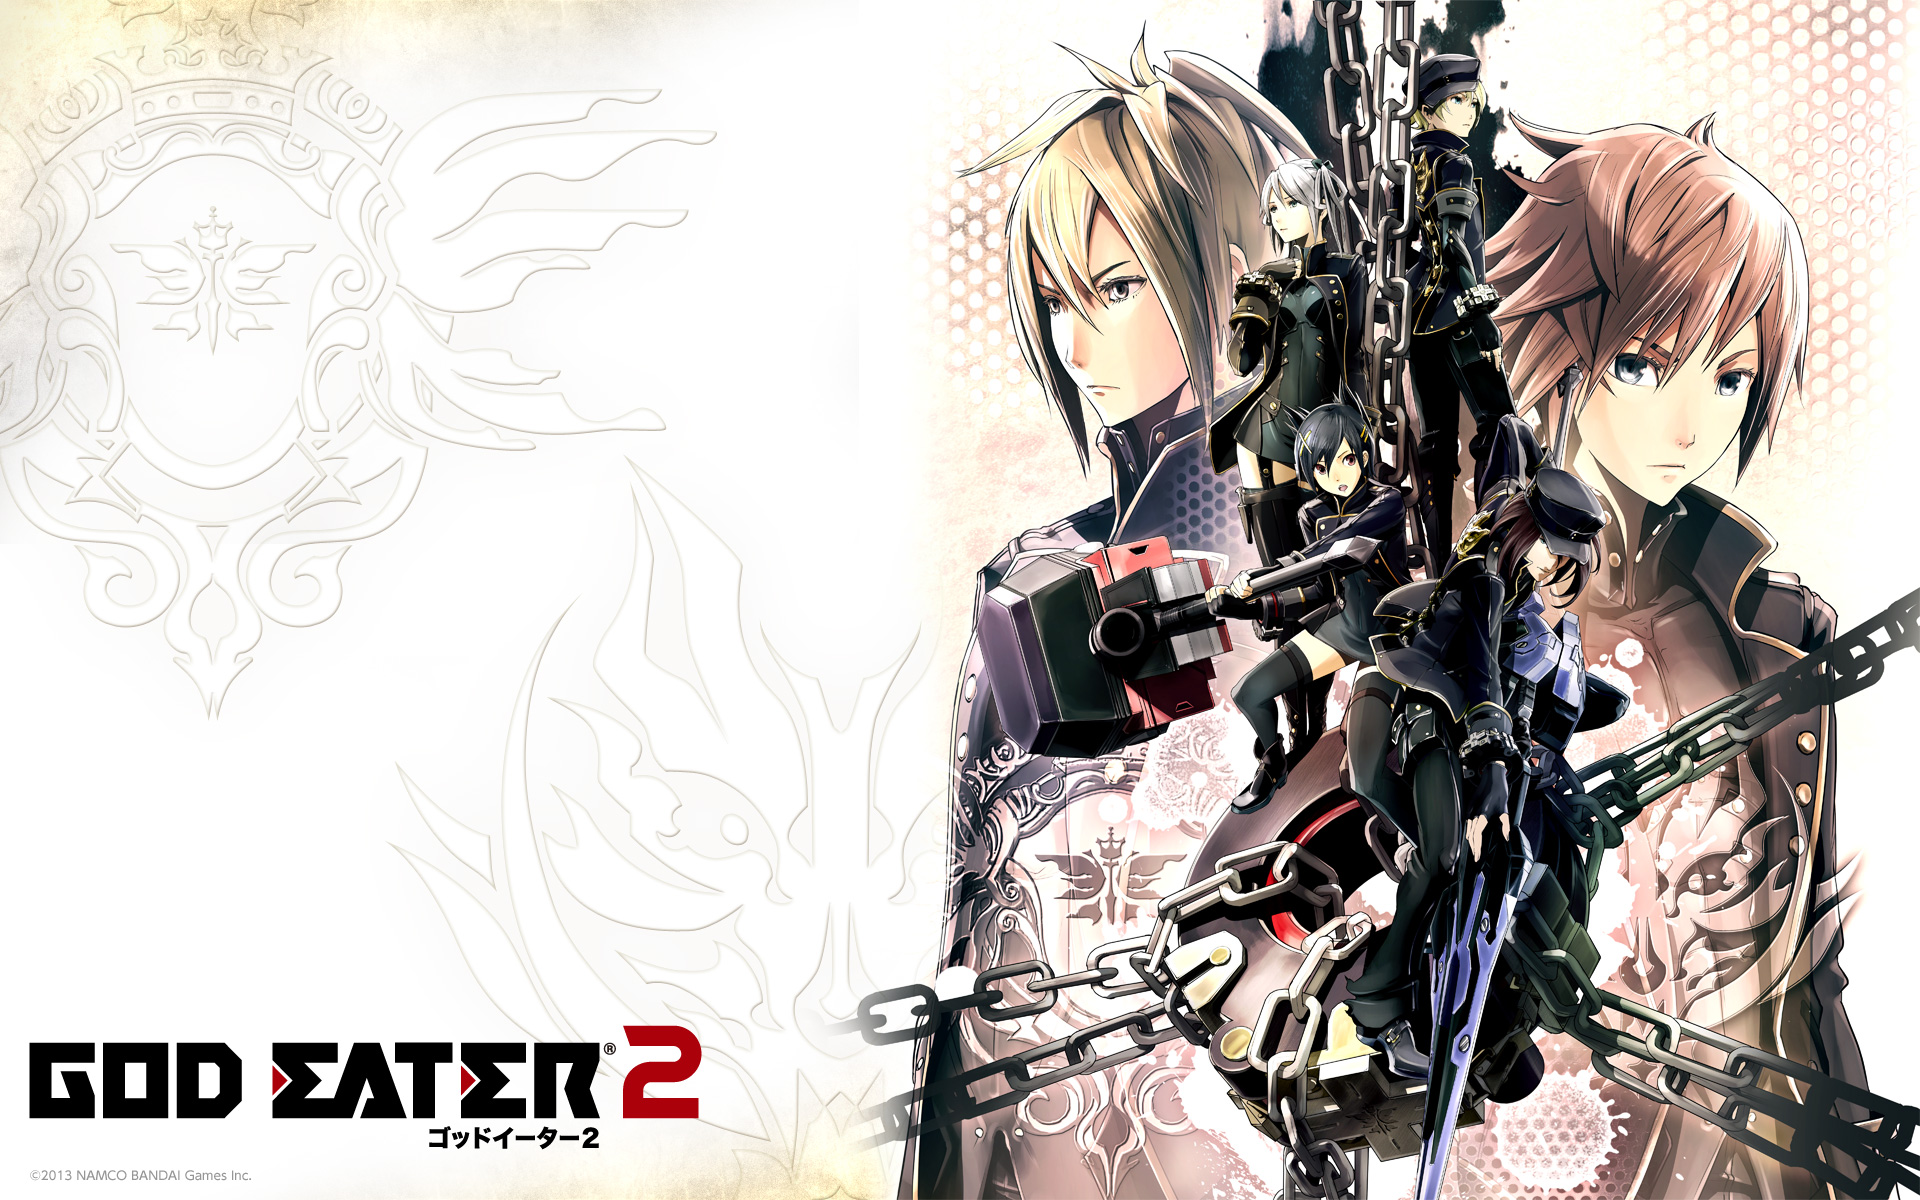 games movies music anime god eater 2 new art wallpapers